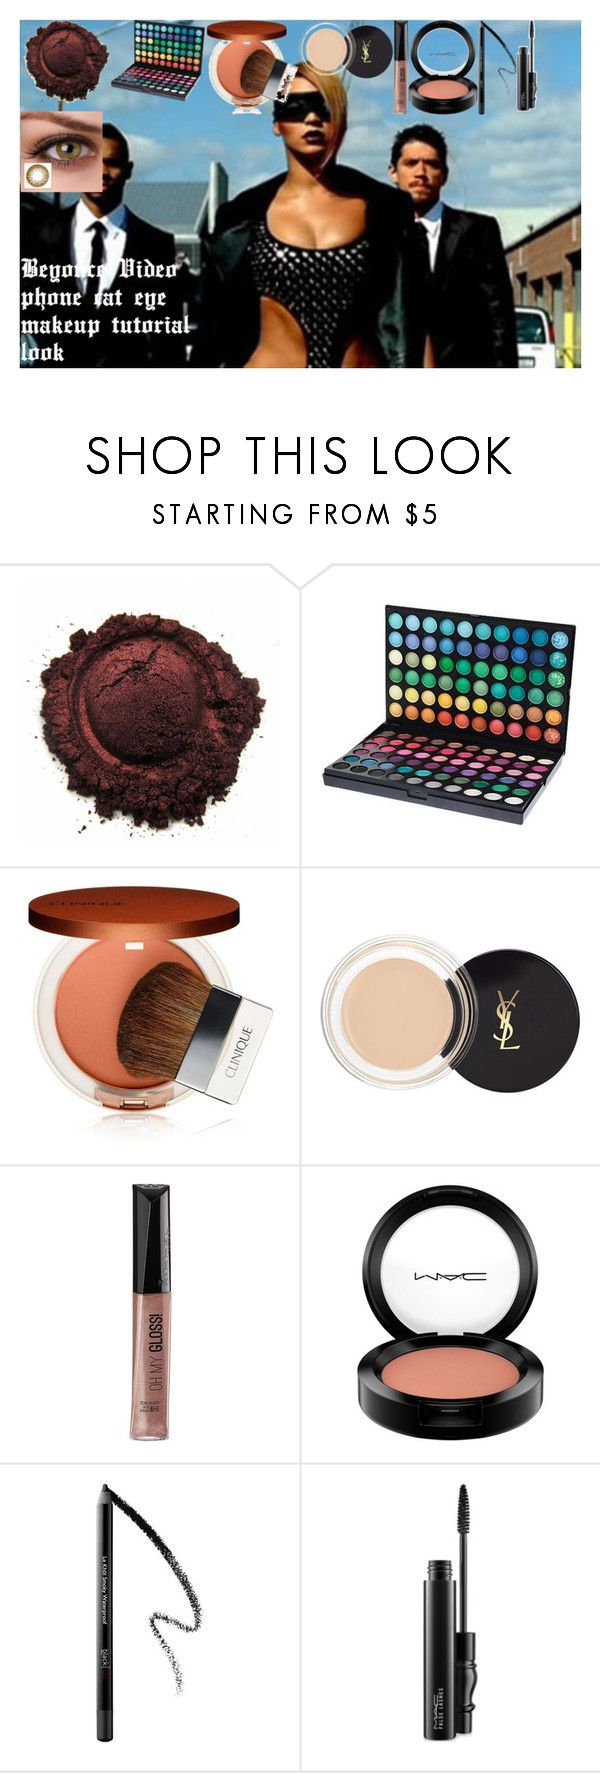 Beyonce Video phone cat eye makeup tutorial look by oroartye-1 on Polyvore featuring beauty, Clinique, Yves Saint Laurent, MAC Cosmetics, Rimmel and Peek